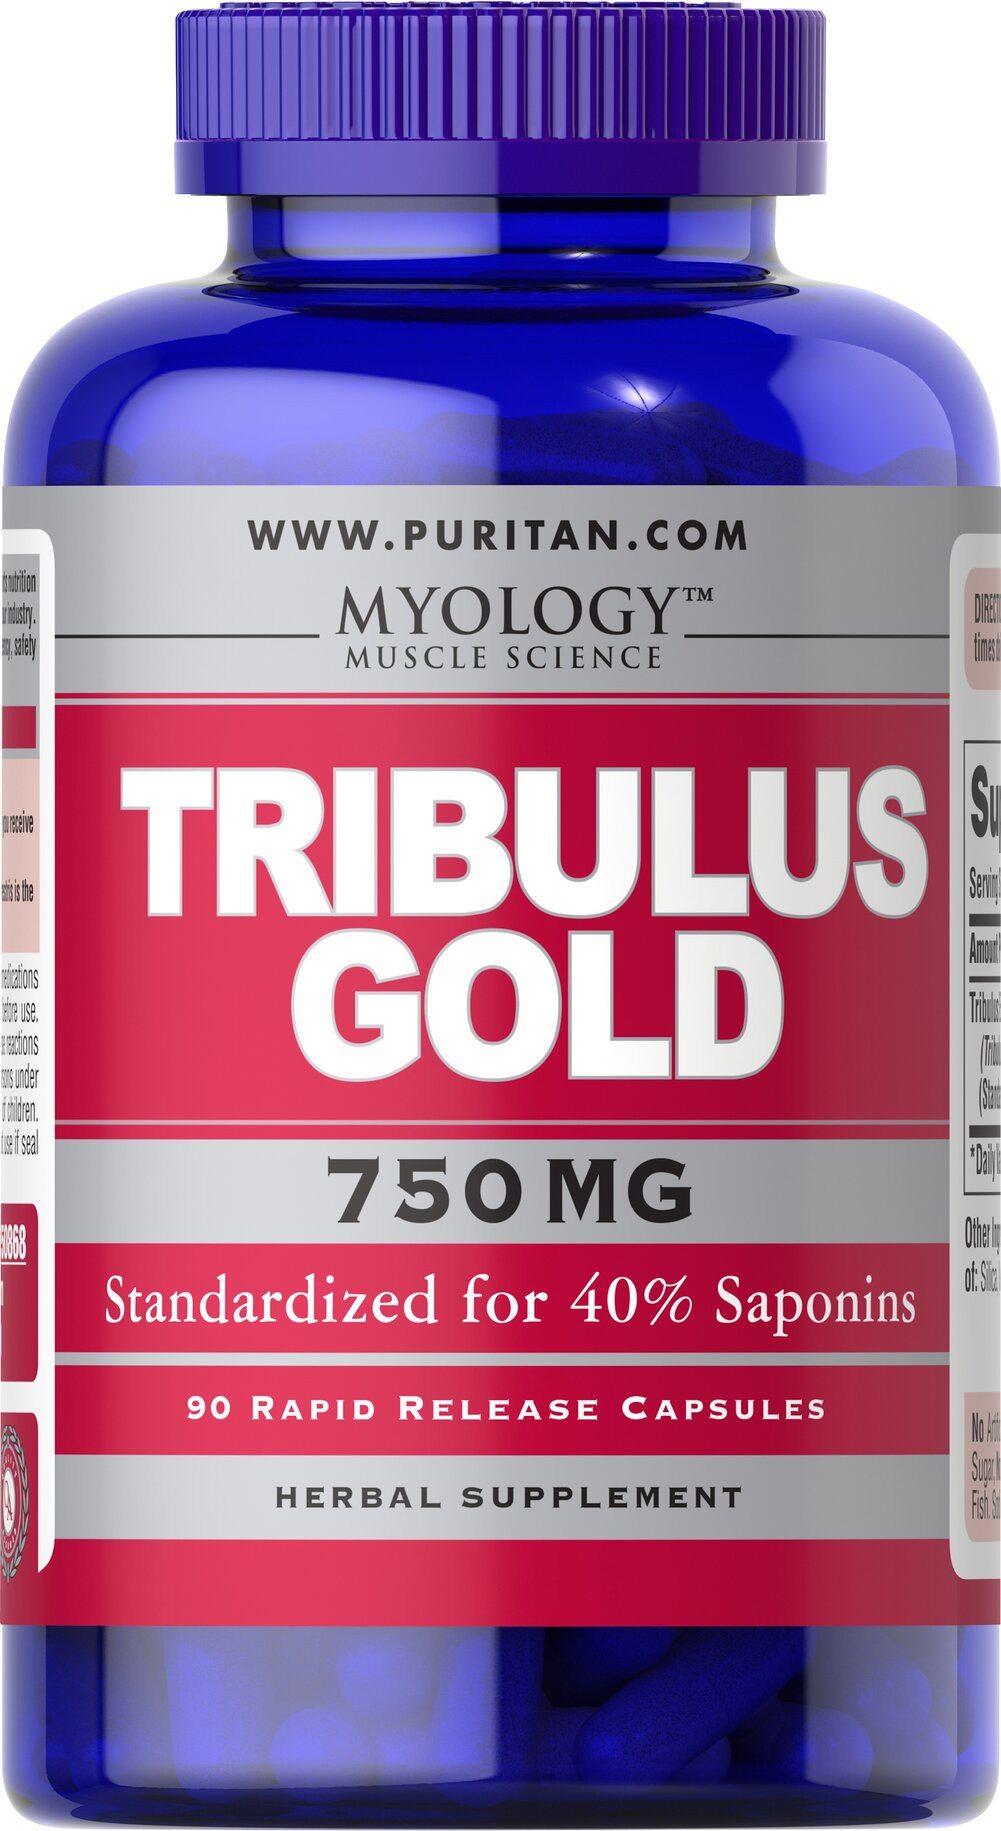 Tribulus Gold Standardized Extract 750 mg Tribulus GOLD <p>•Lab-tested for 40% saponins per serving, to help ensure you receive the active components.</p><p>•An herb traditionally used by bodybuilders, Tribulus Terrestris is the perfect complement to your hardcore training regimen!</p> 90 Capsules 750 mg $17.99